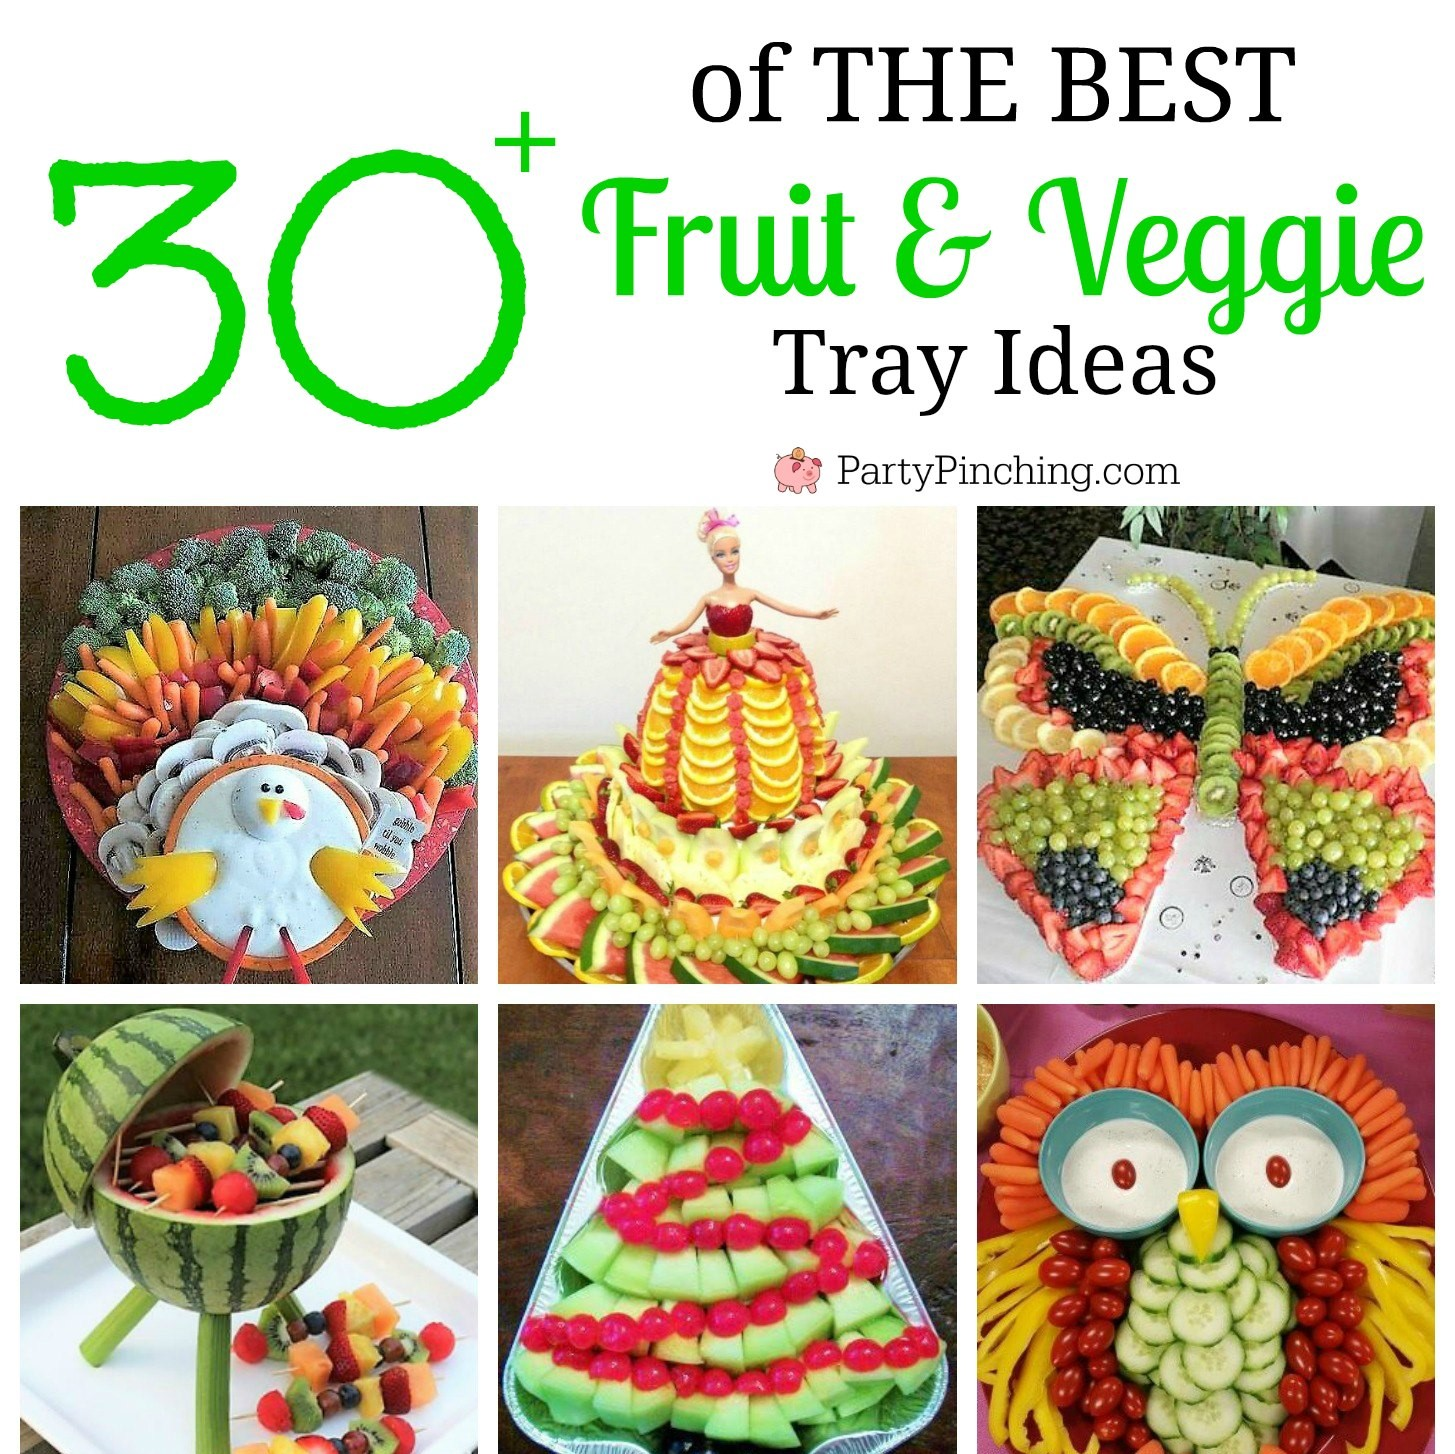 The BEST Fruit & Veggie Tray Ideas Roundup - Party Pinching